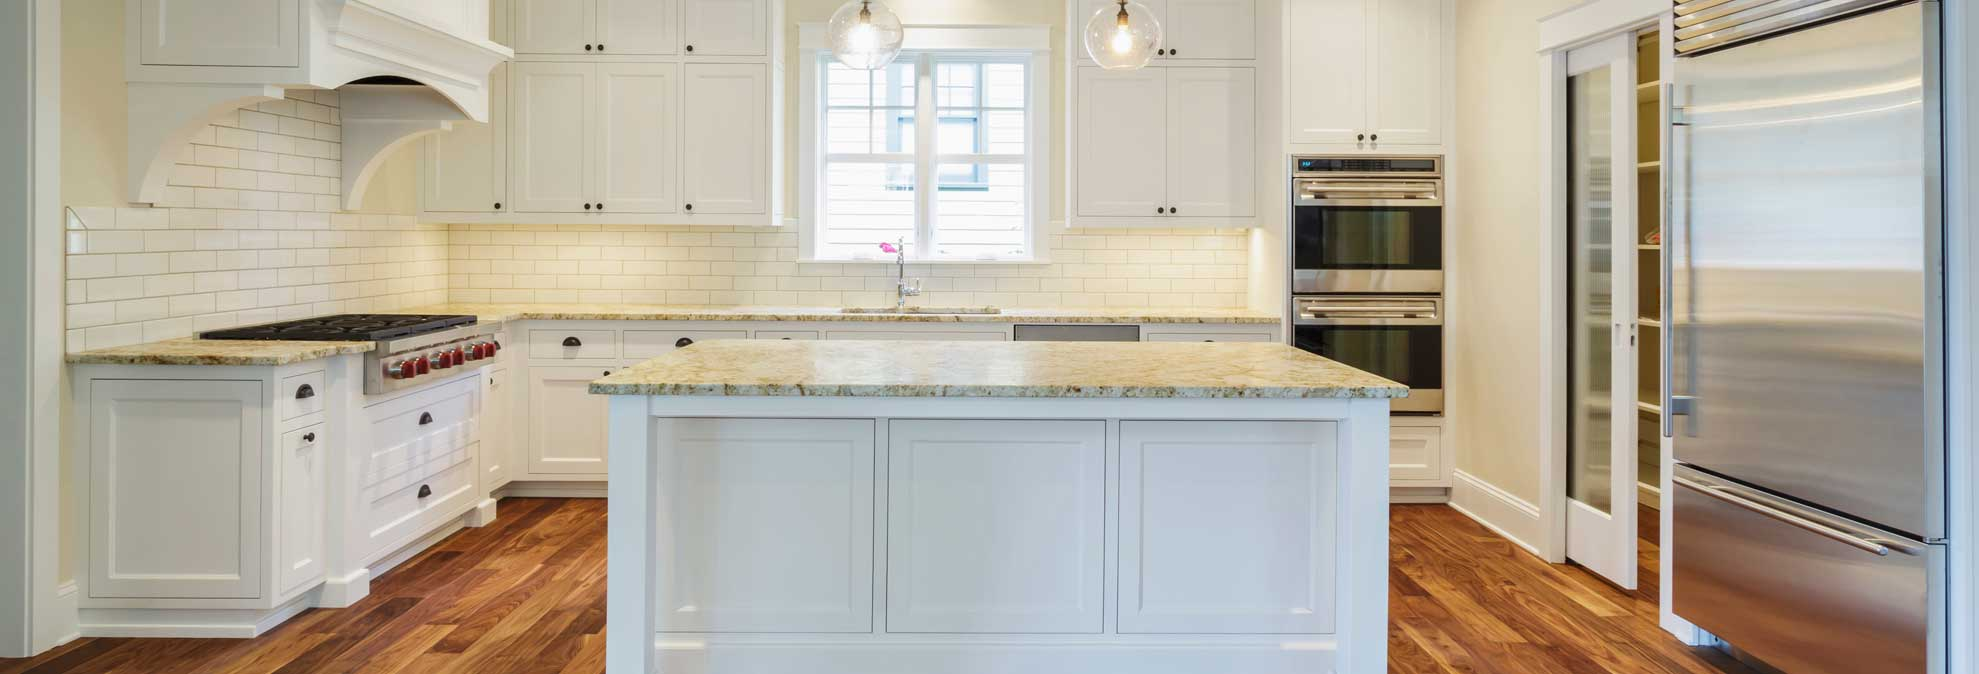 kitchen remodel mistakes that will bust your budget - consumer reports